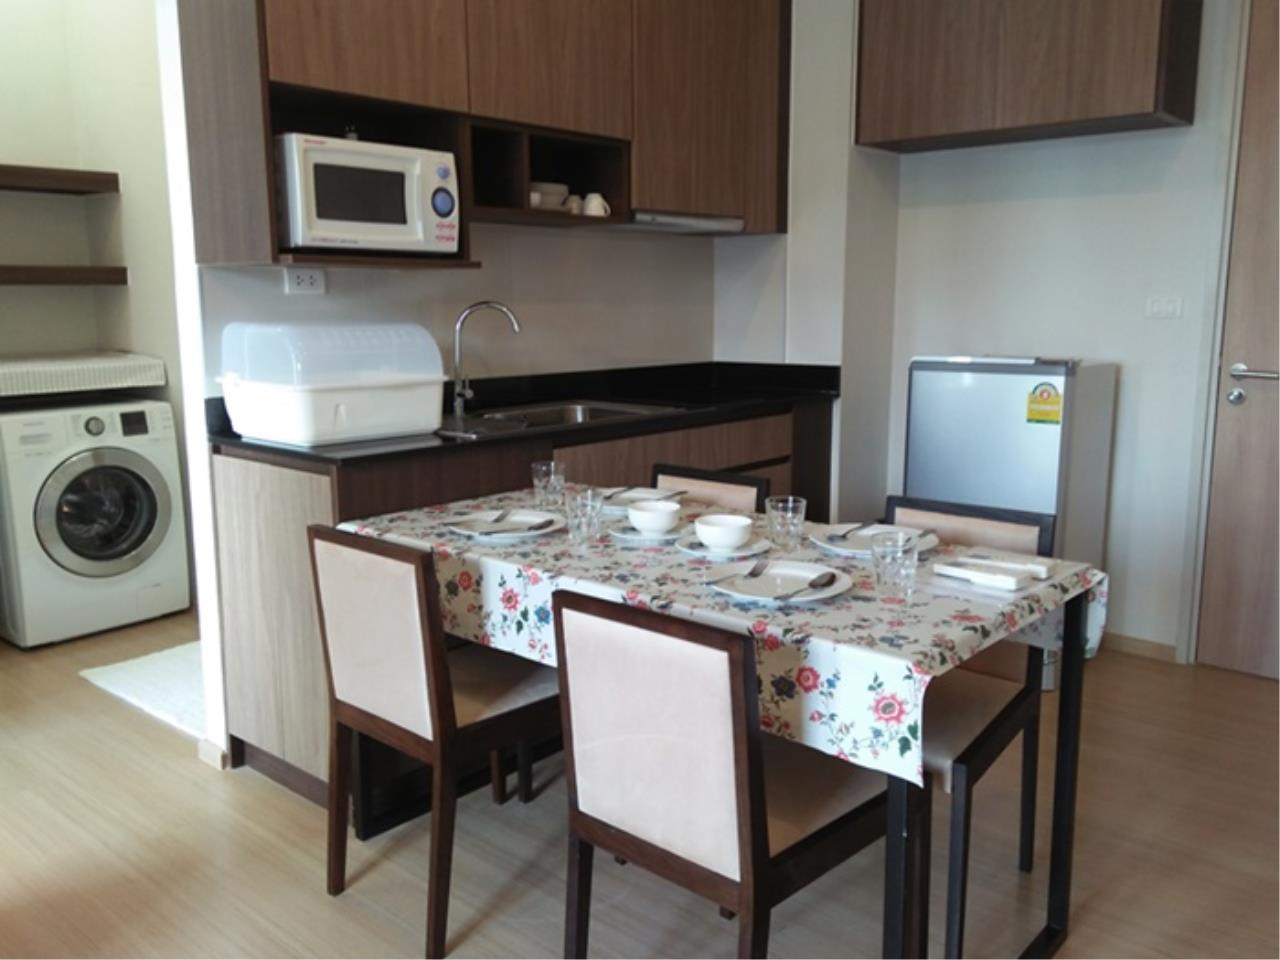 Siam Prop Agency's The Capital Ekamai - Thonglor Luxury Condo, 2 bedrooms for rent with 4-meter ceiling height 5